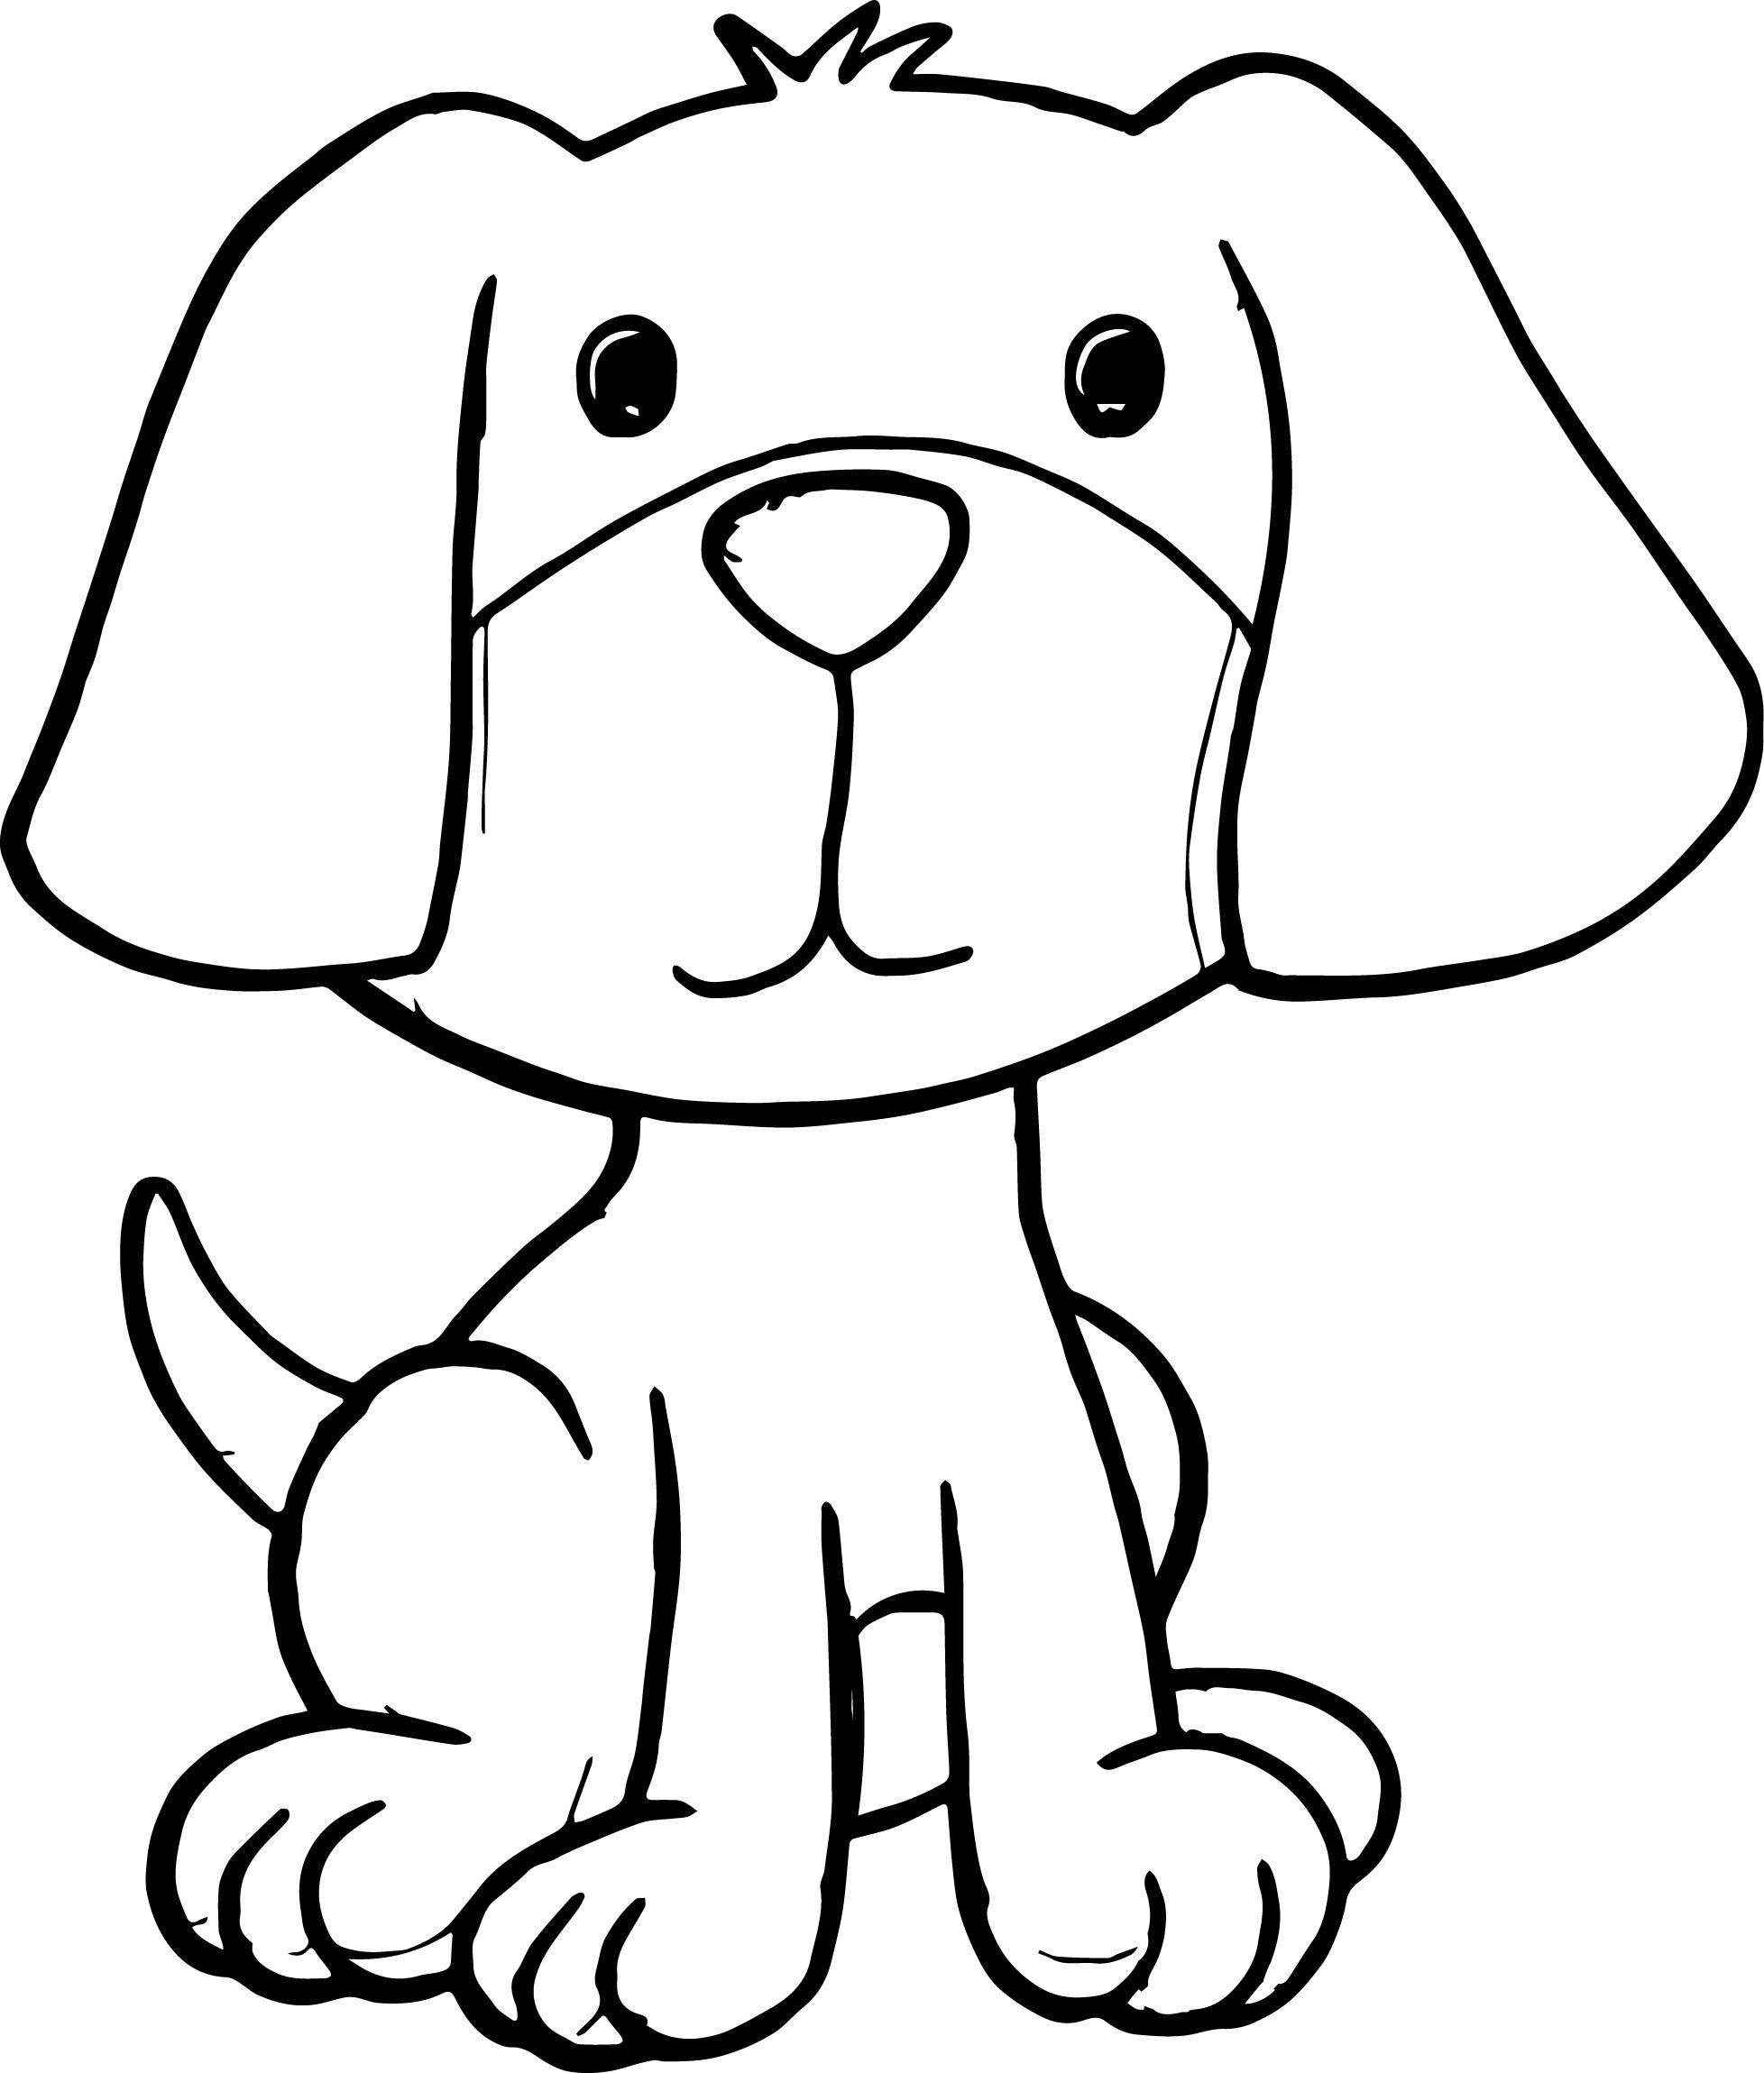 coloring cartoon dog awesome chien cartoon dog coloring page mcoloring coloring dog cartoon